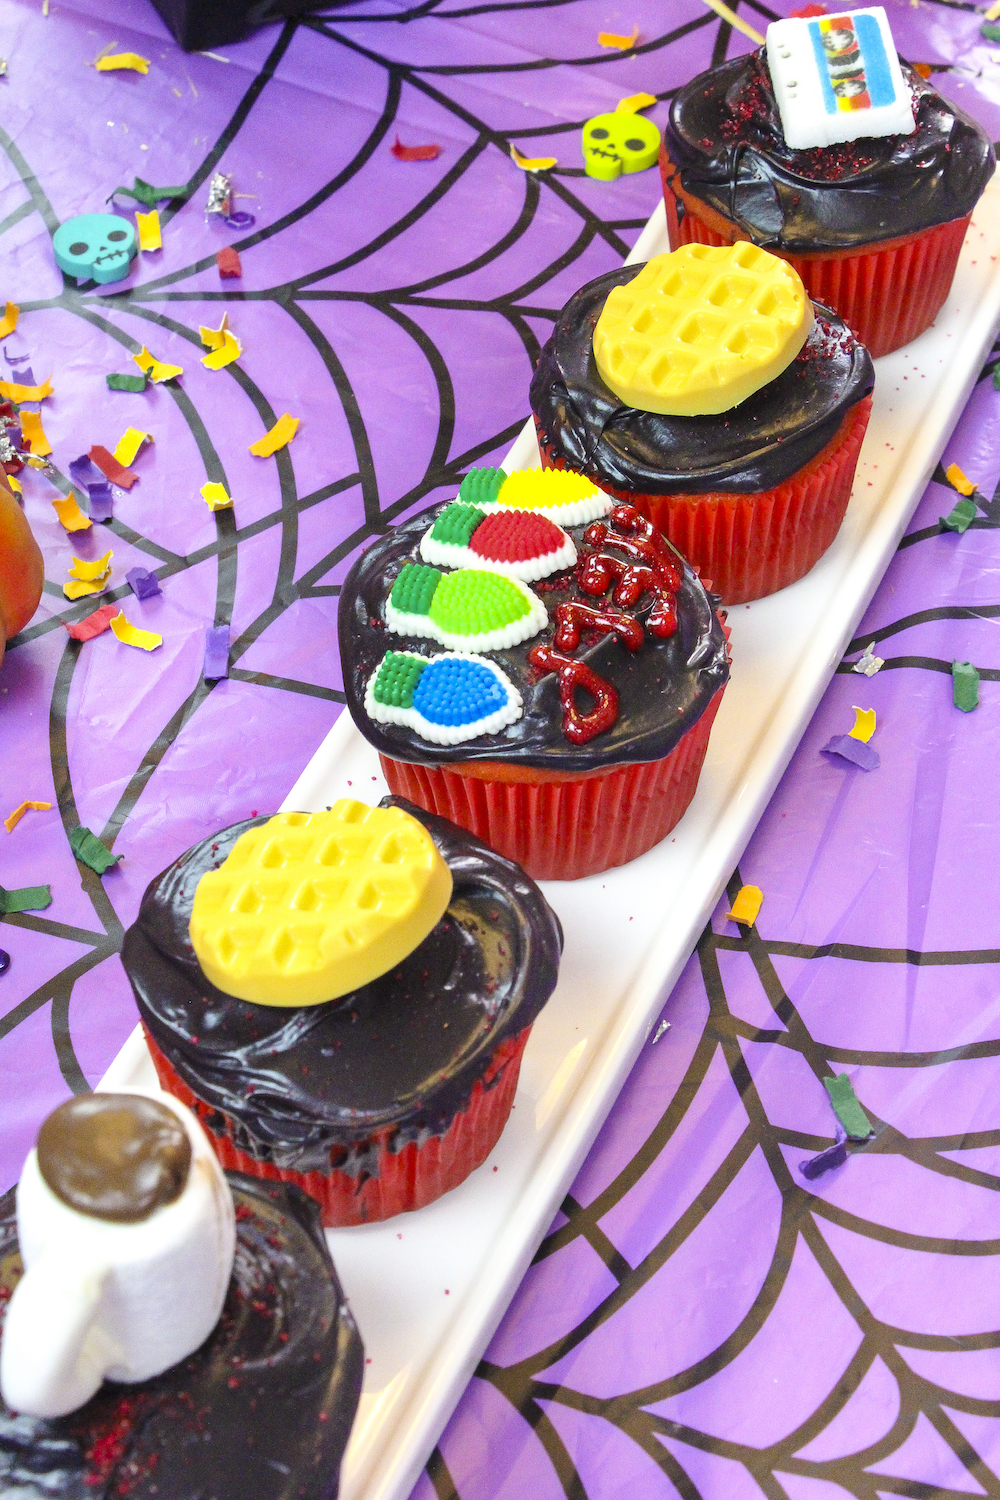 How To Make Black Food Coloring With White Frosting